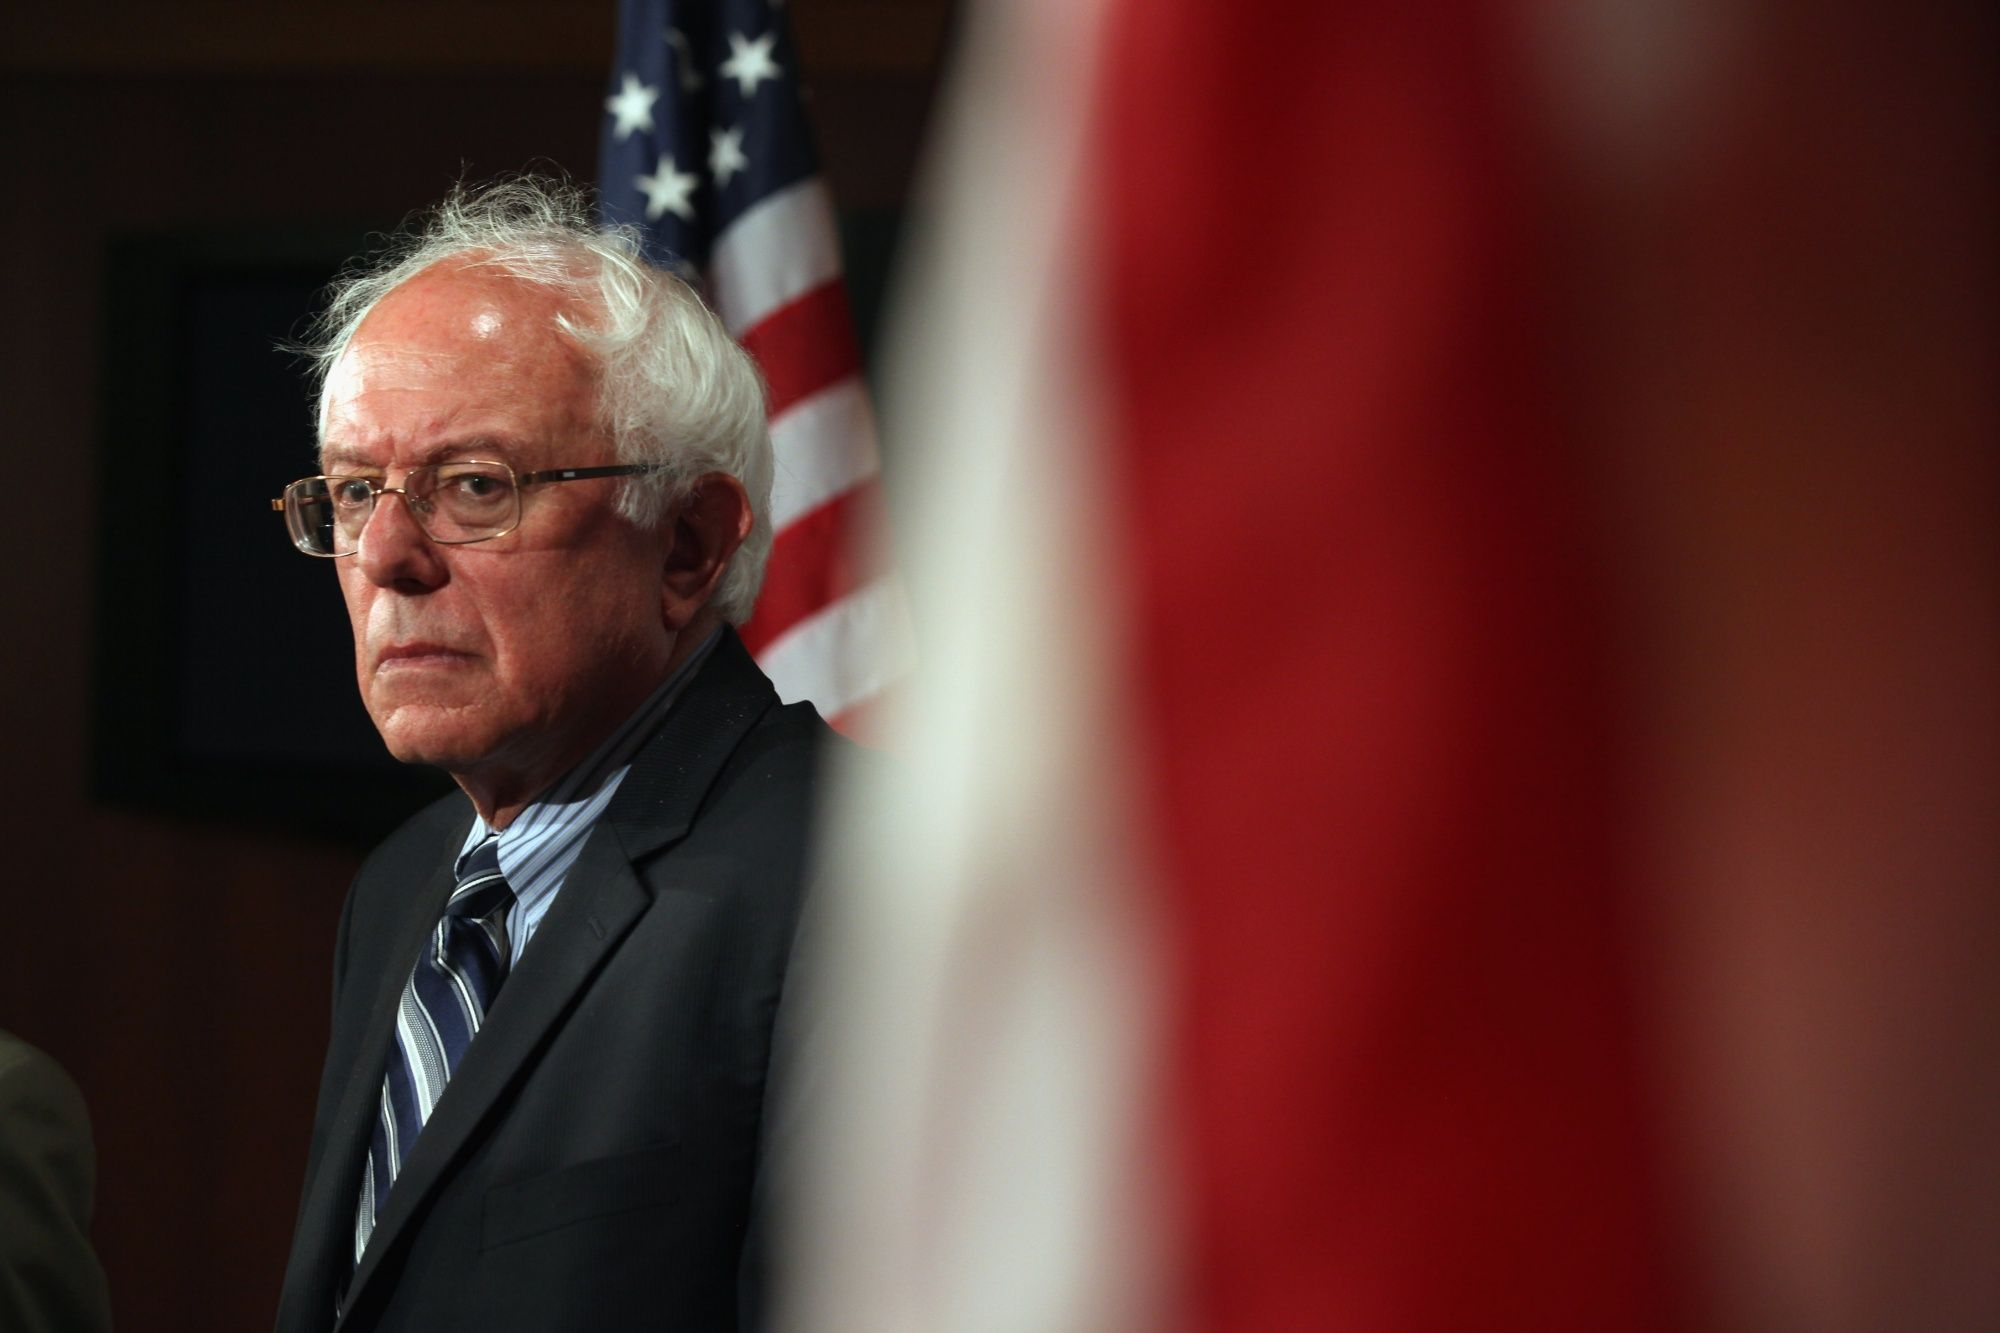 Sanders Takes Iowa Lead Over Buttigieg, Biden in NYT Poll